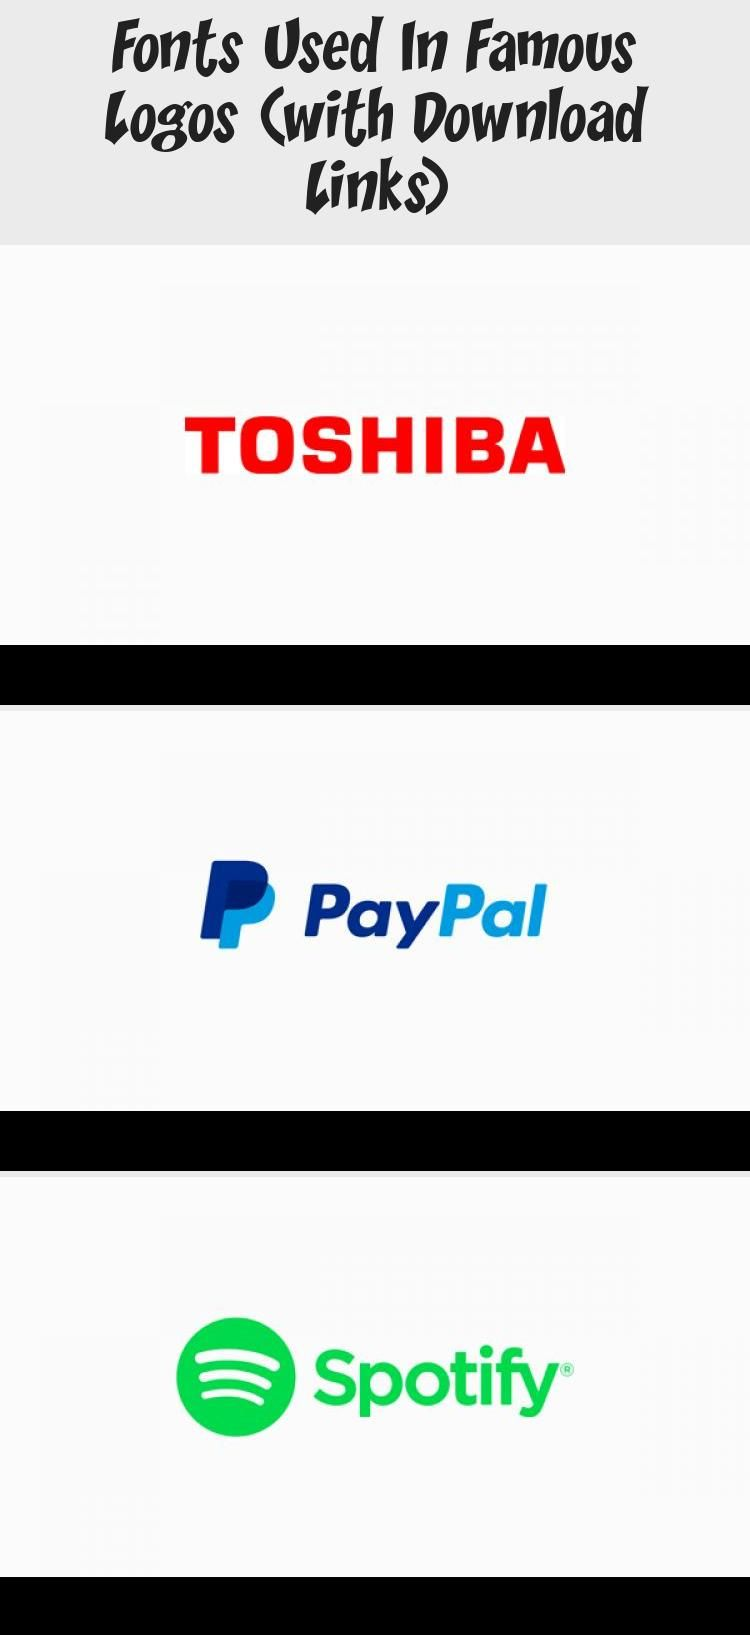 Fonts Used In Famous Logos With Download Links In 2020 Famous Logos Company Logo Company Logo Wall